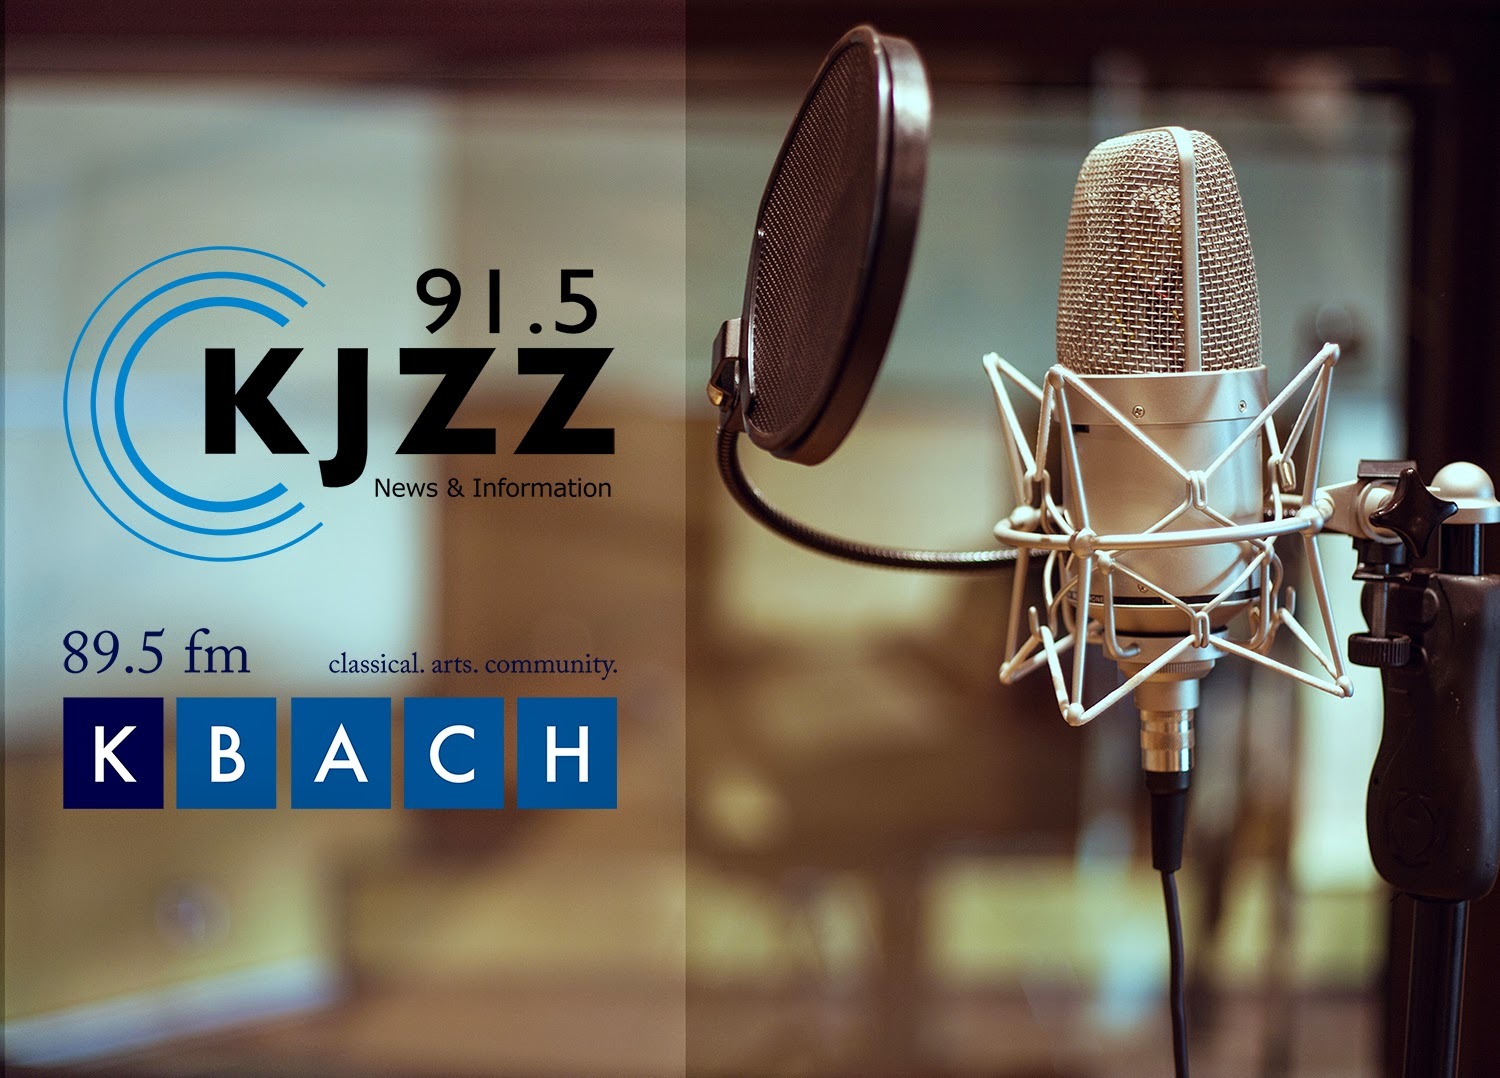 image of a studio microphone and KJZZ/KBACH logos